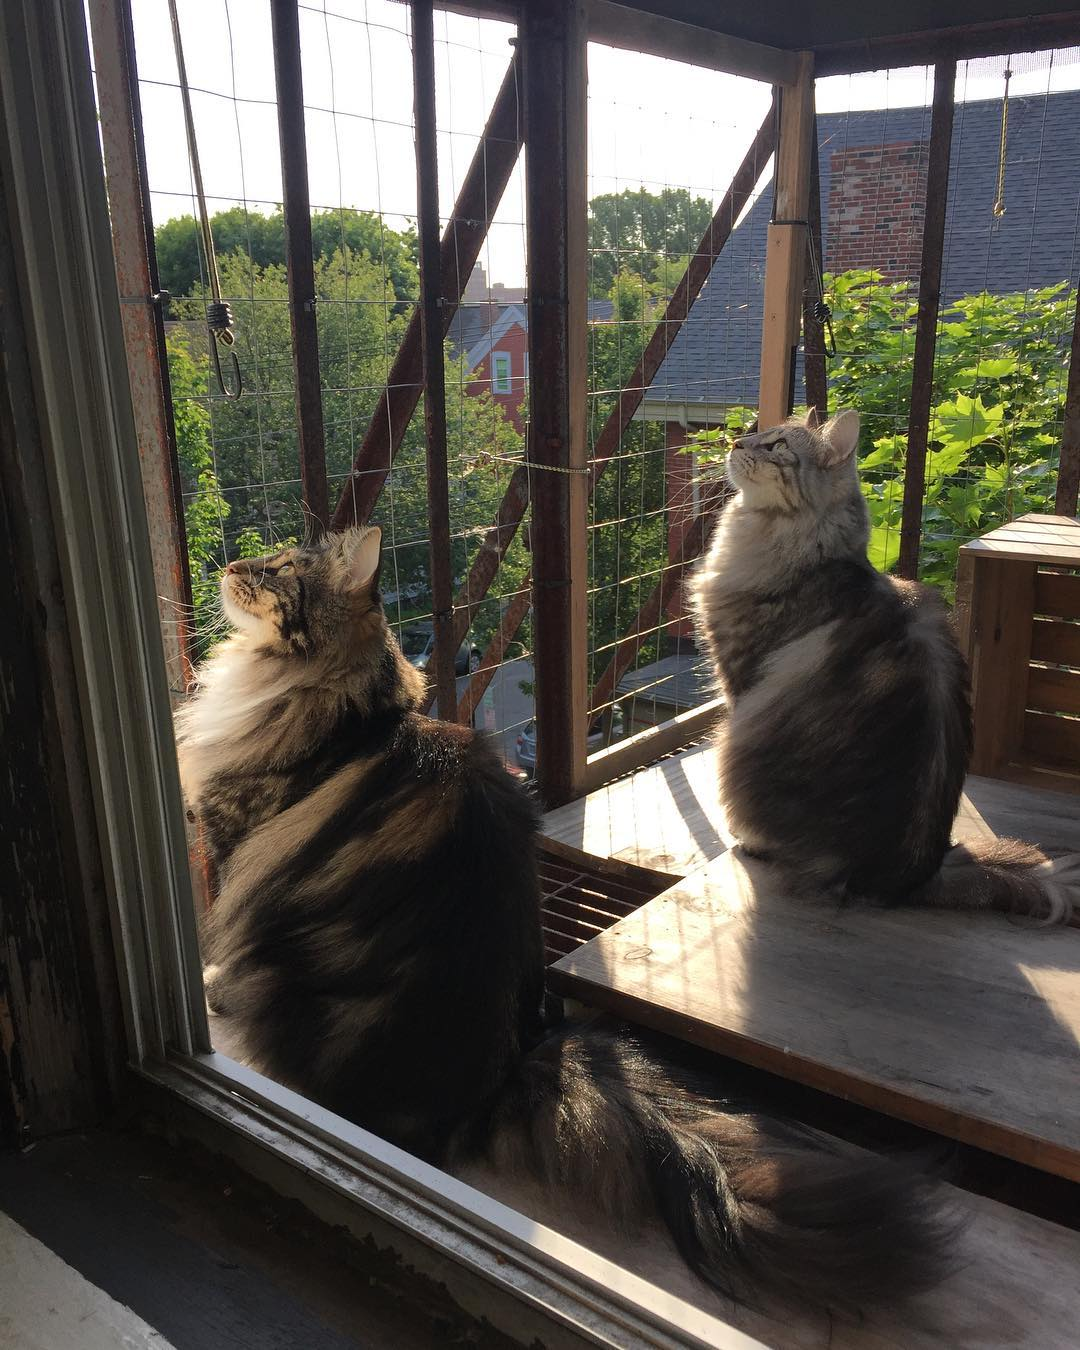 Mo and Olivia spend lots of time on their catio in the mornings especially, their owner Emily Nodine says. (Photo: Emily Nodine)